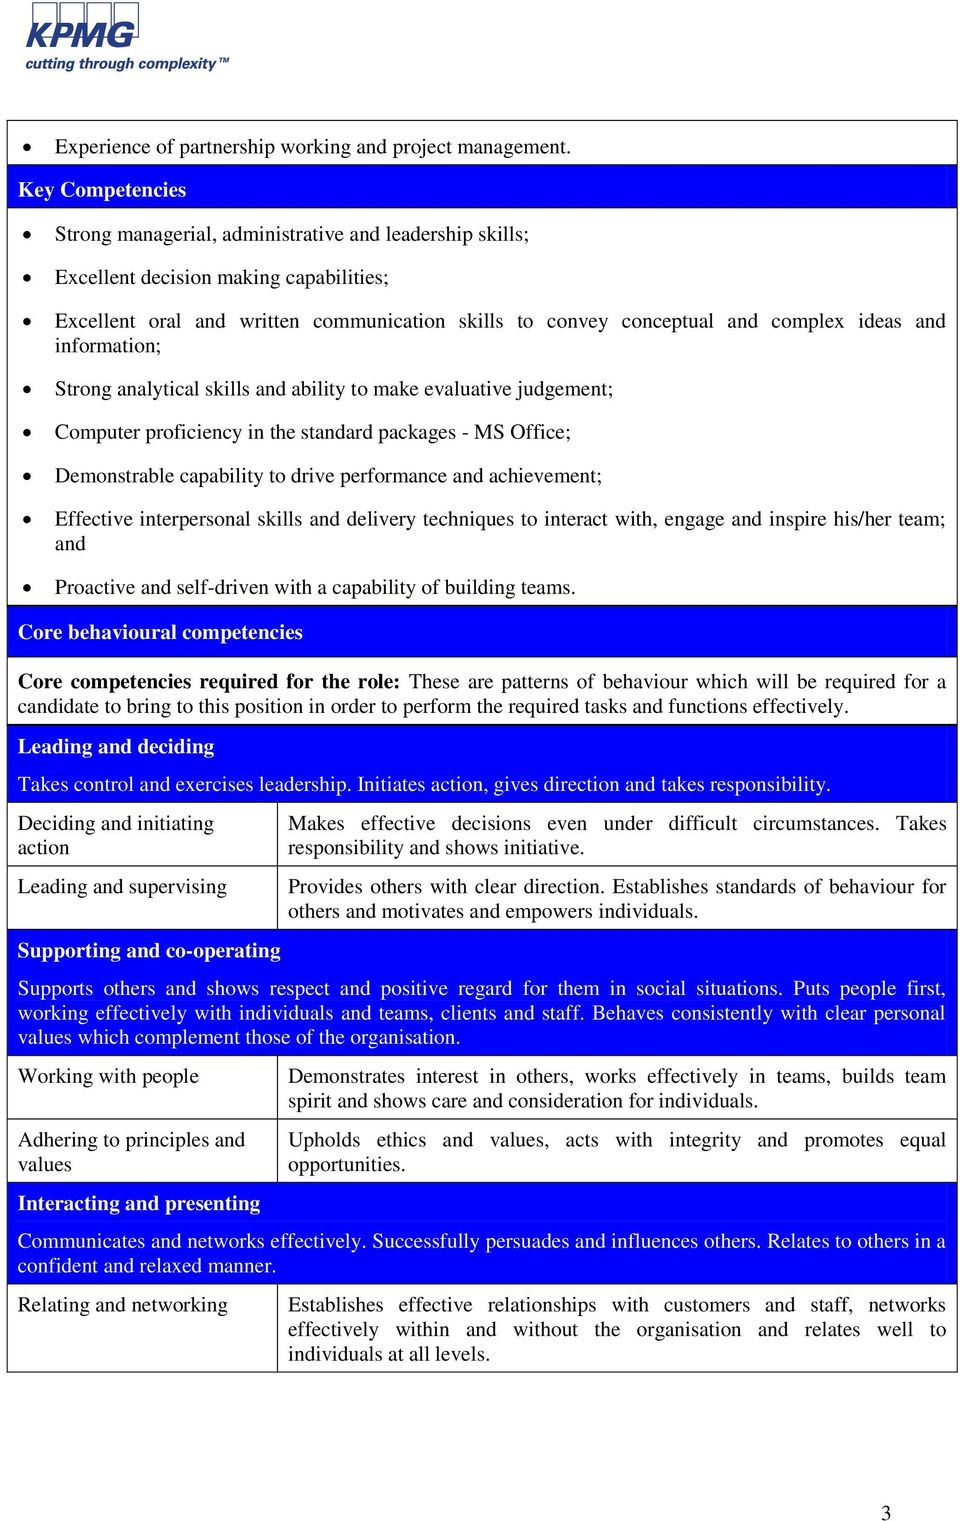 ideas and information; Strong analytical skills and ability to make evaluative judgement; Computer proficiency in the standard packages - MS Office; Demonstrable capability to drive performance and